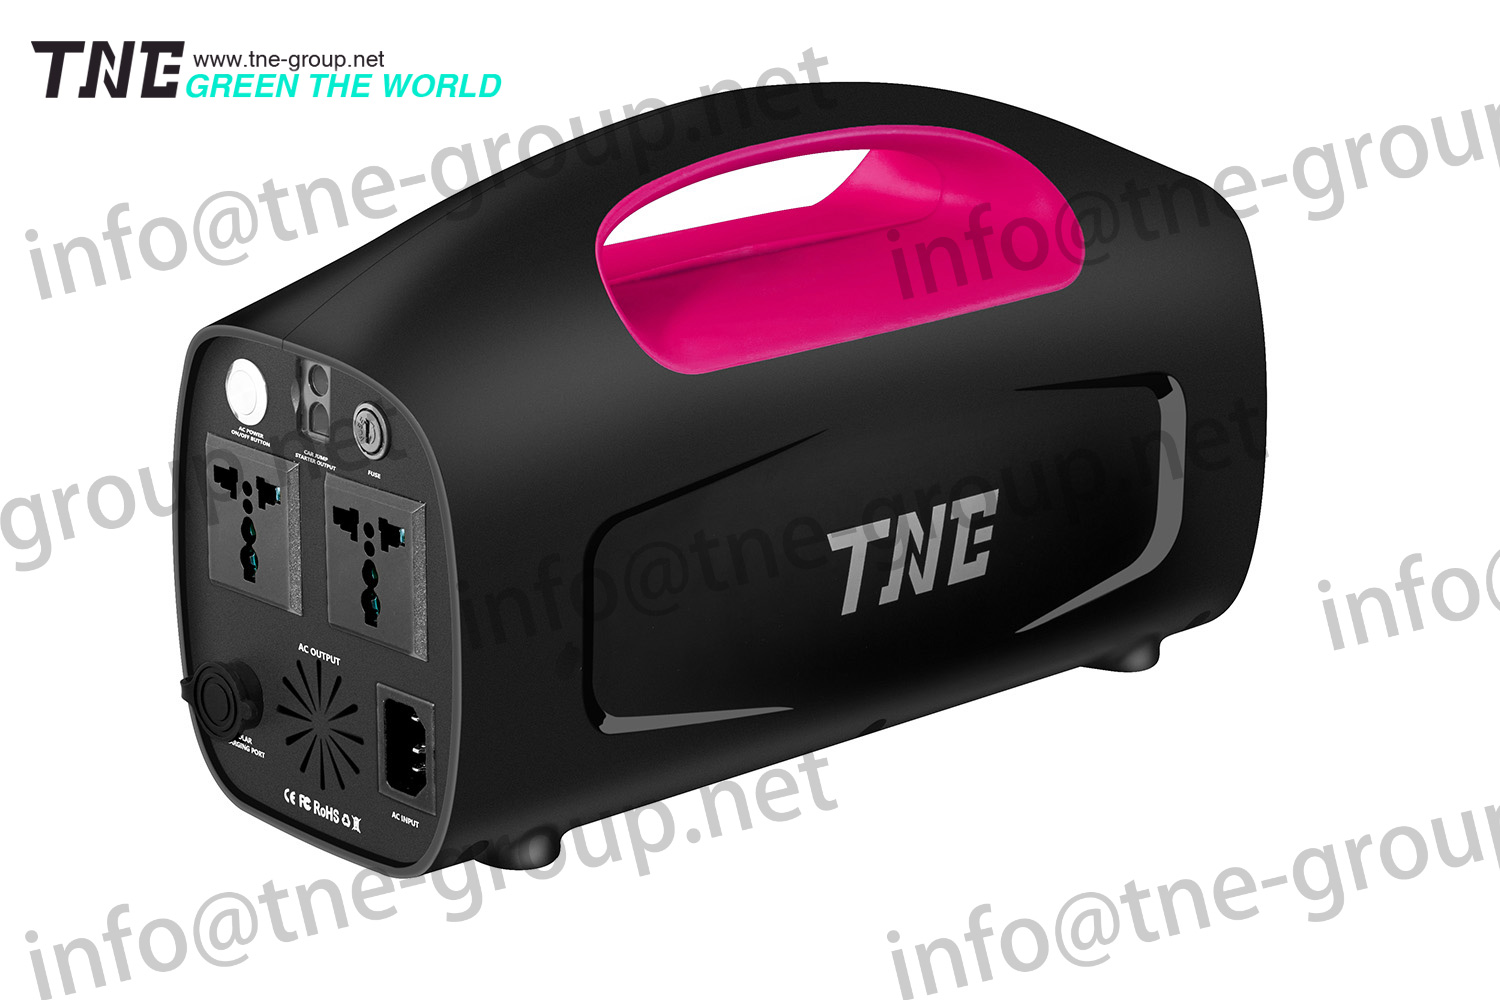 TNE New promotional Customized cell phone charging ups